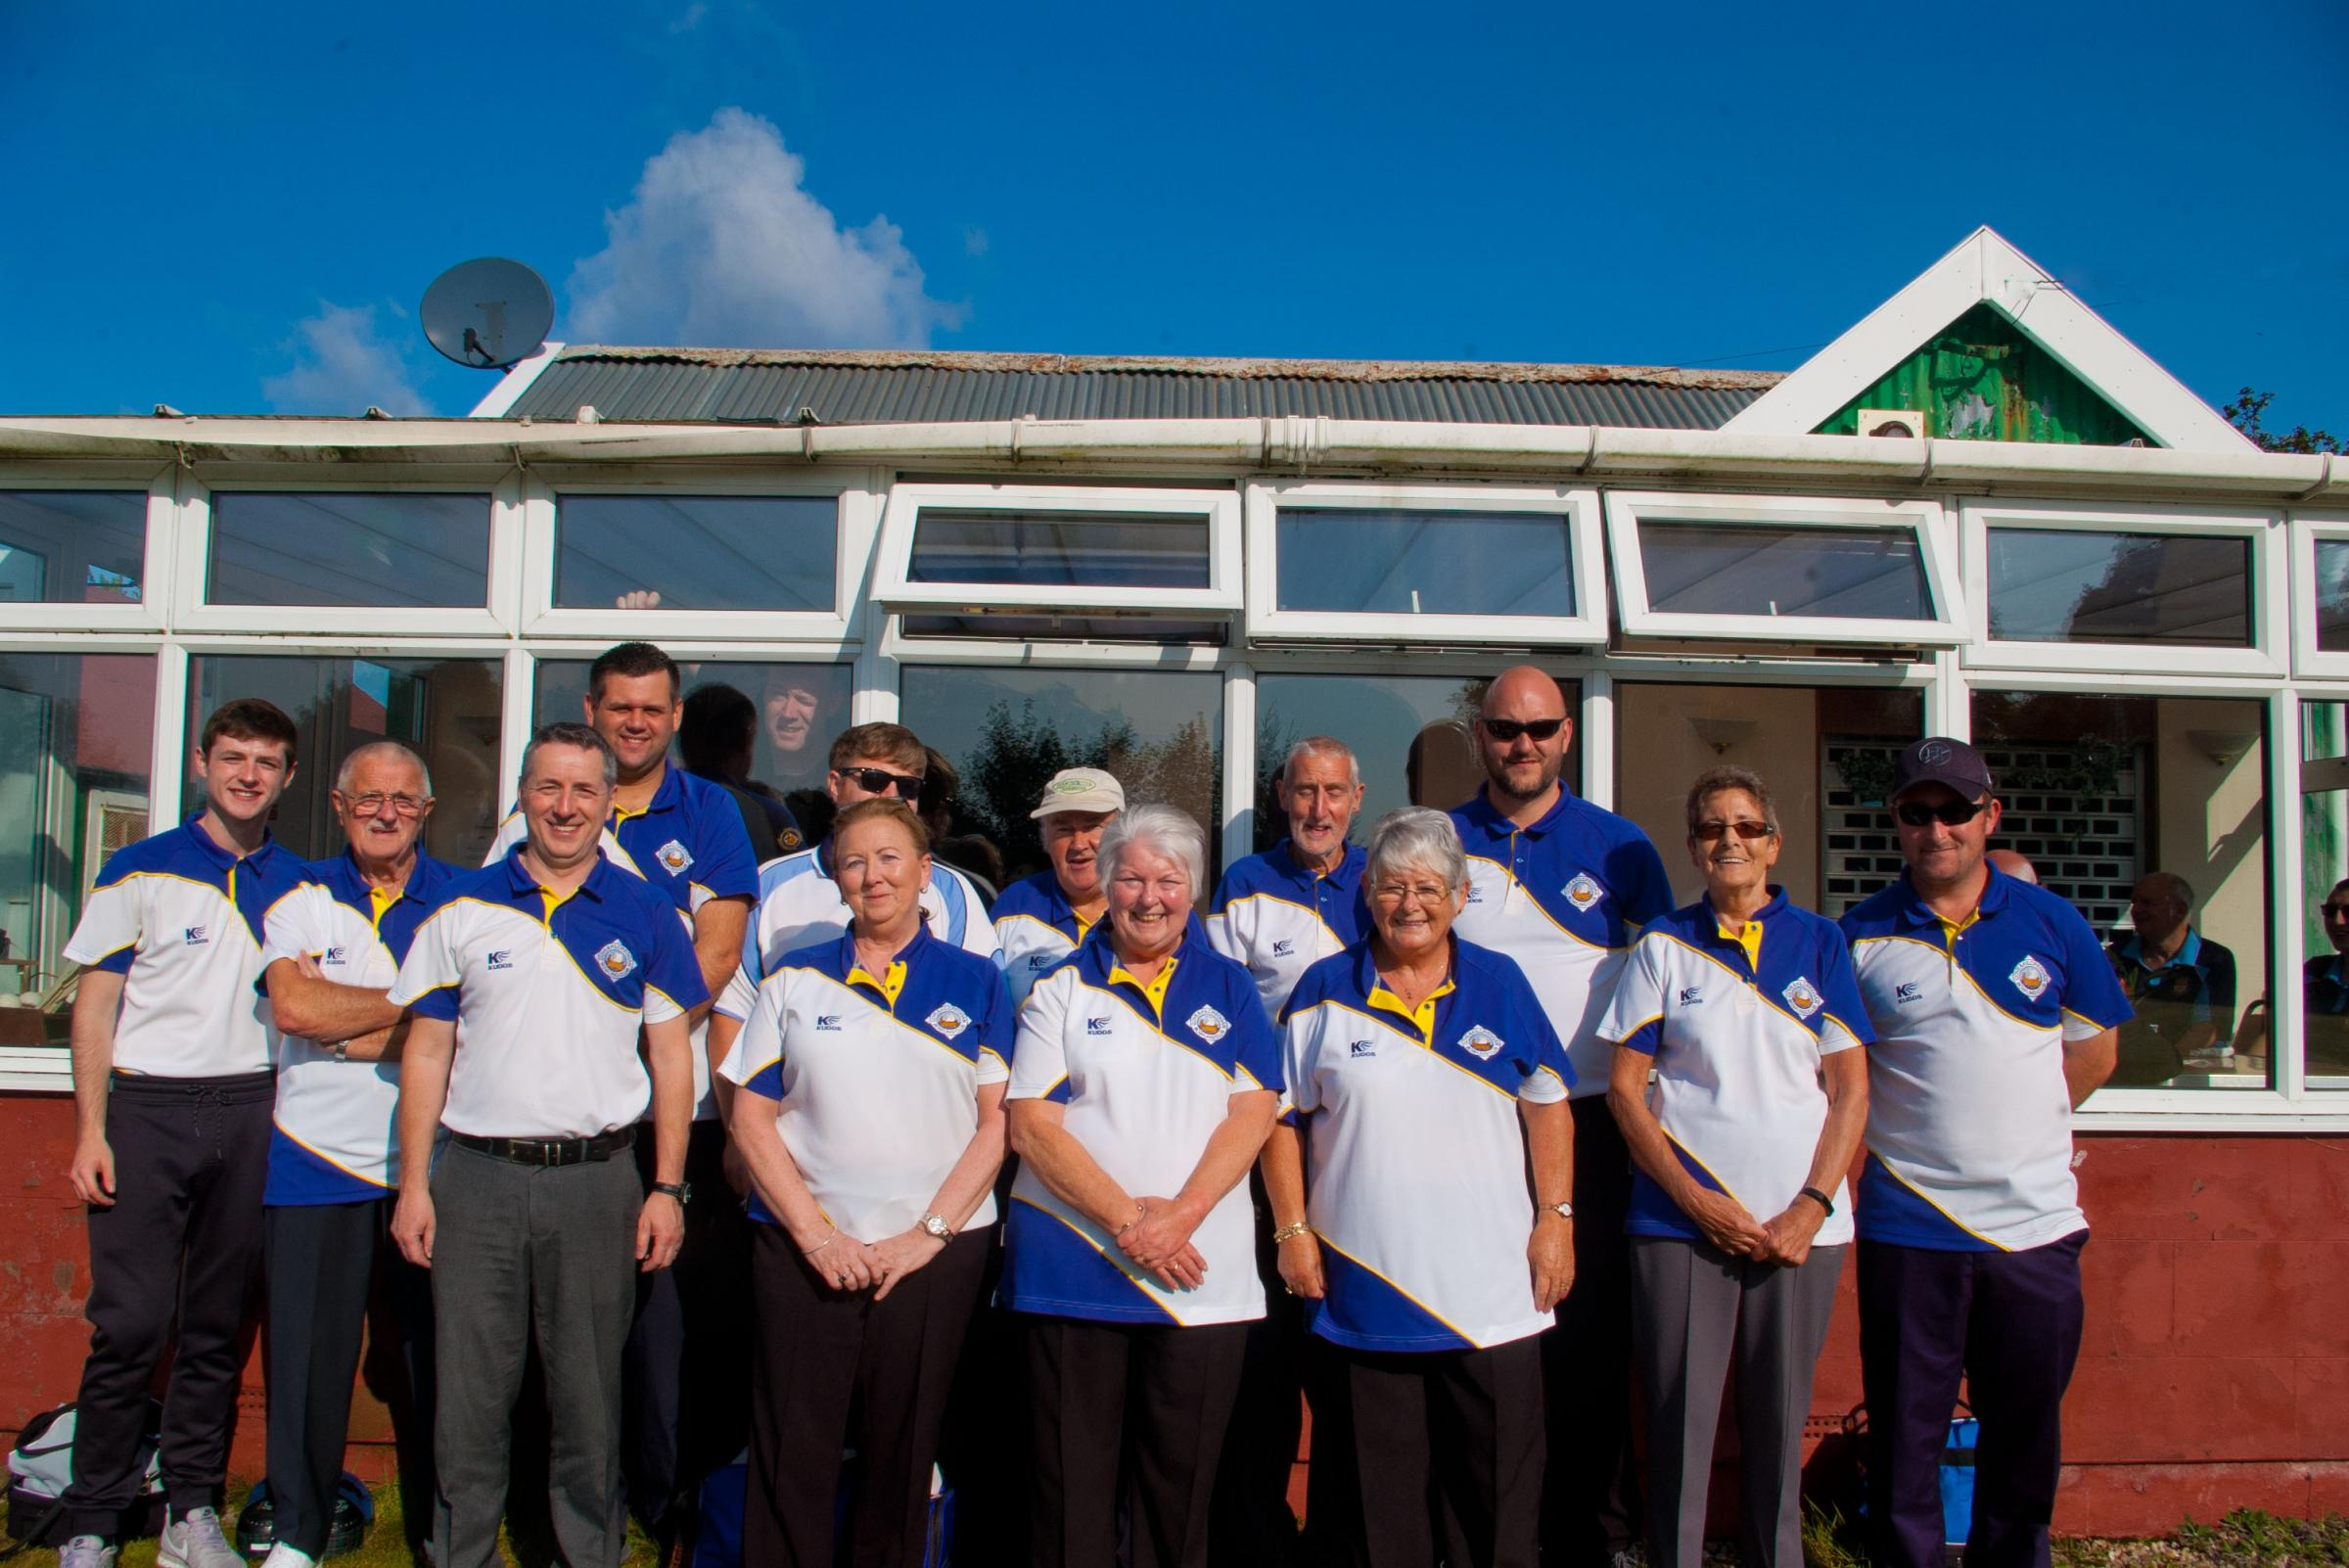 Competitors in Saturday's open pairs tournament at Cove and Kilcreggan